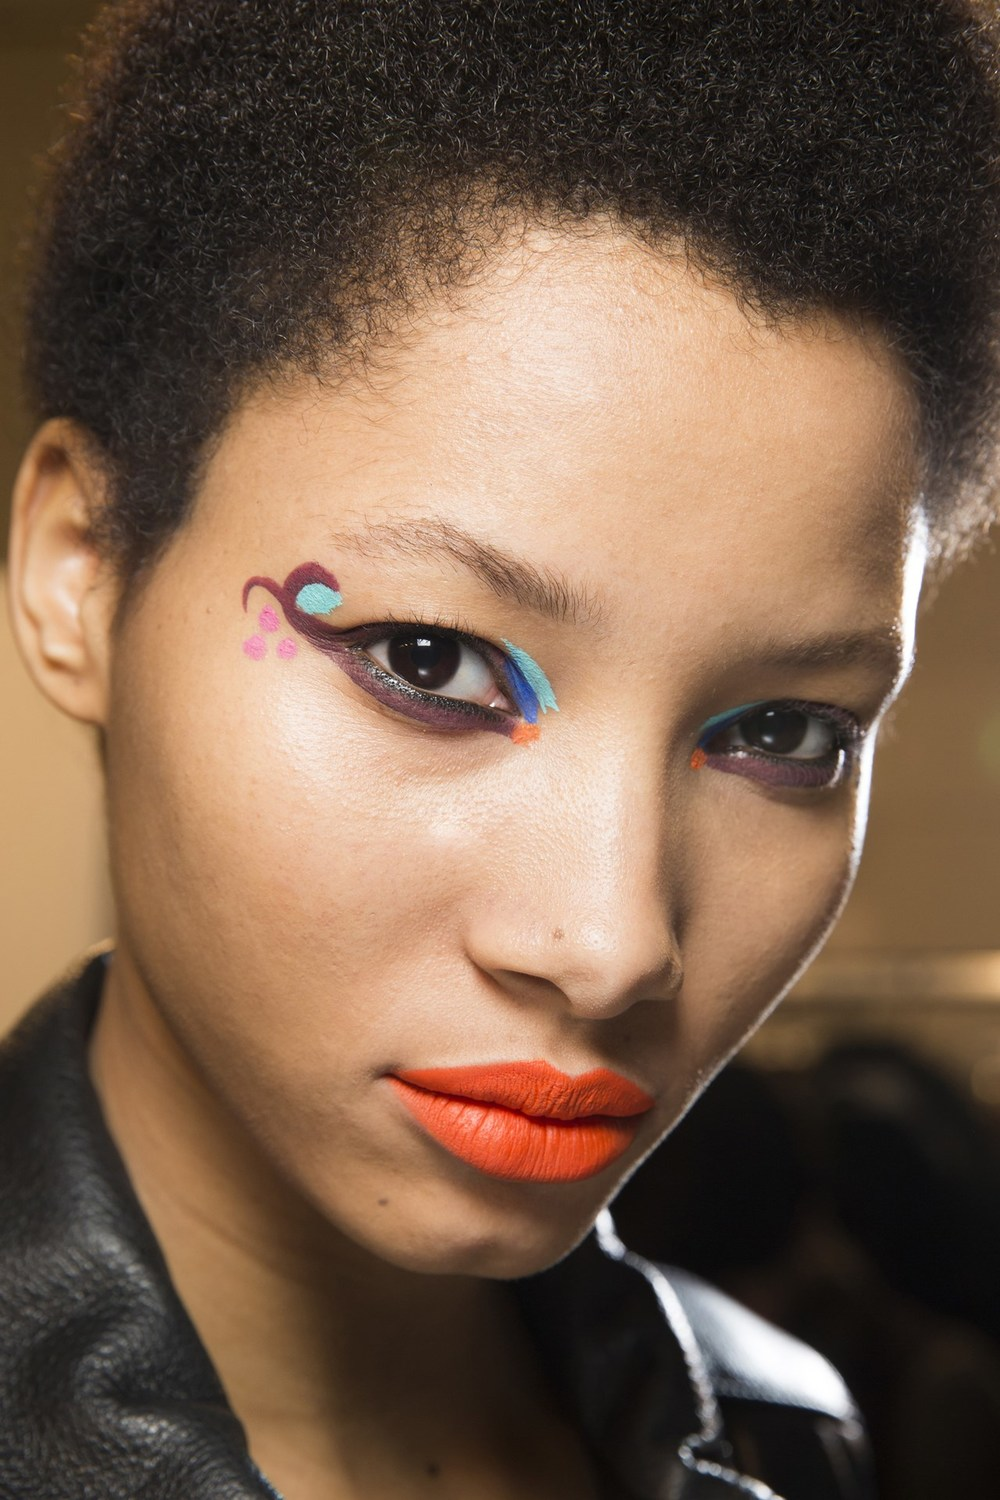 Fendi - Some models also wore a contrast lip, in orange-red or - in one case - bold yellow.